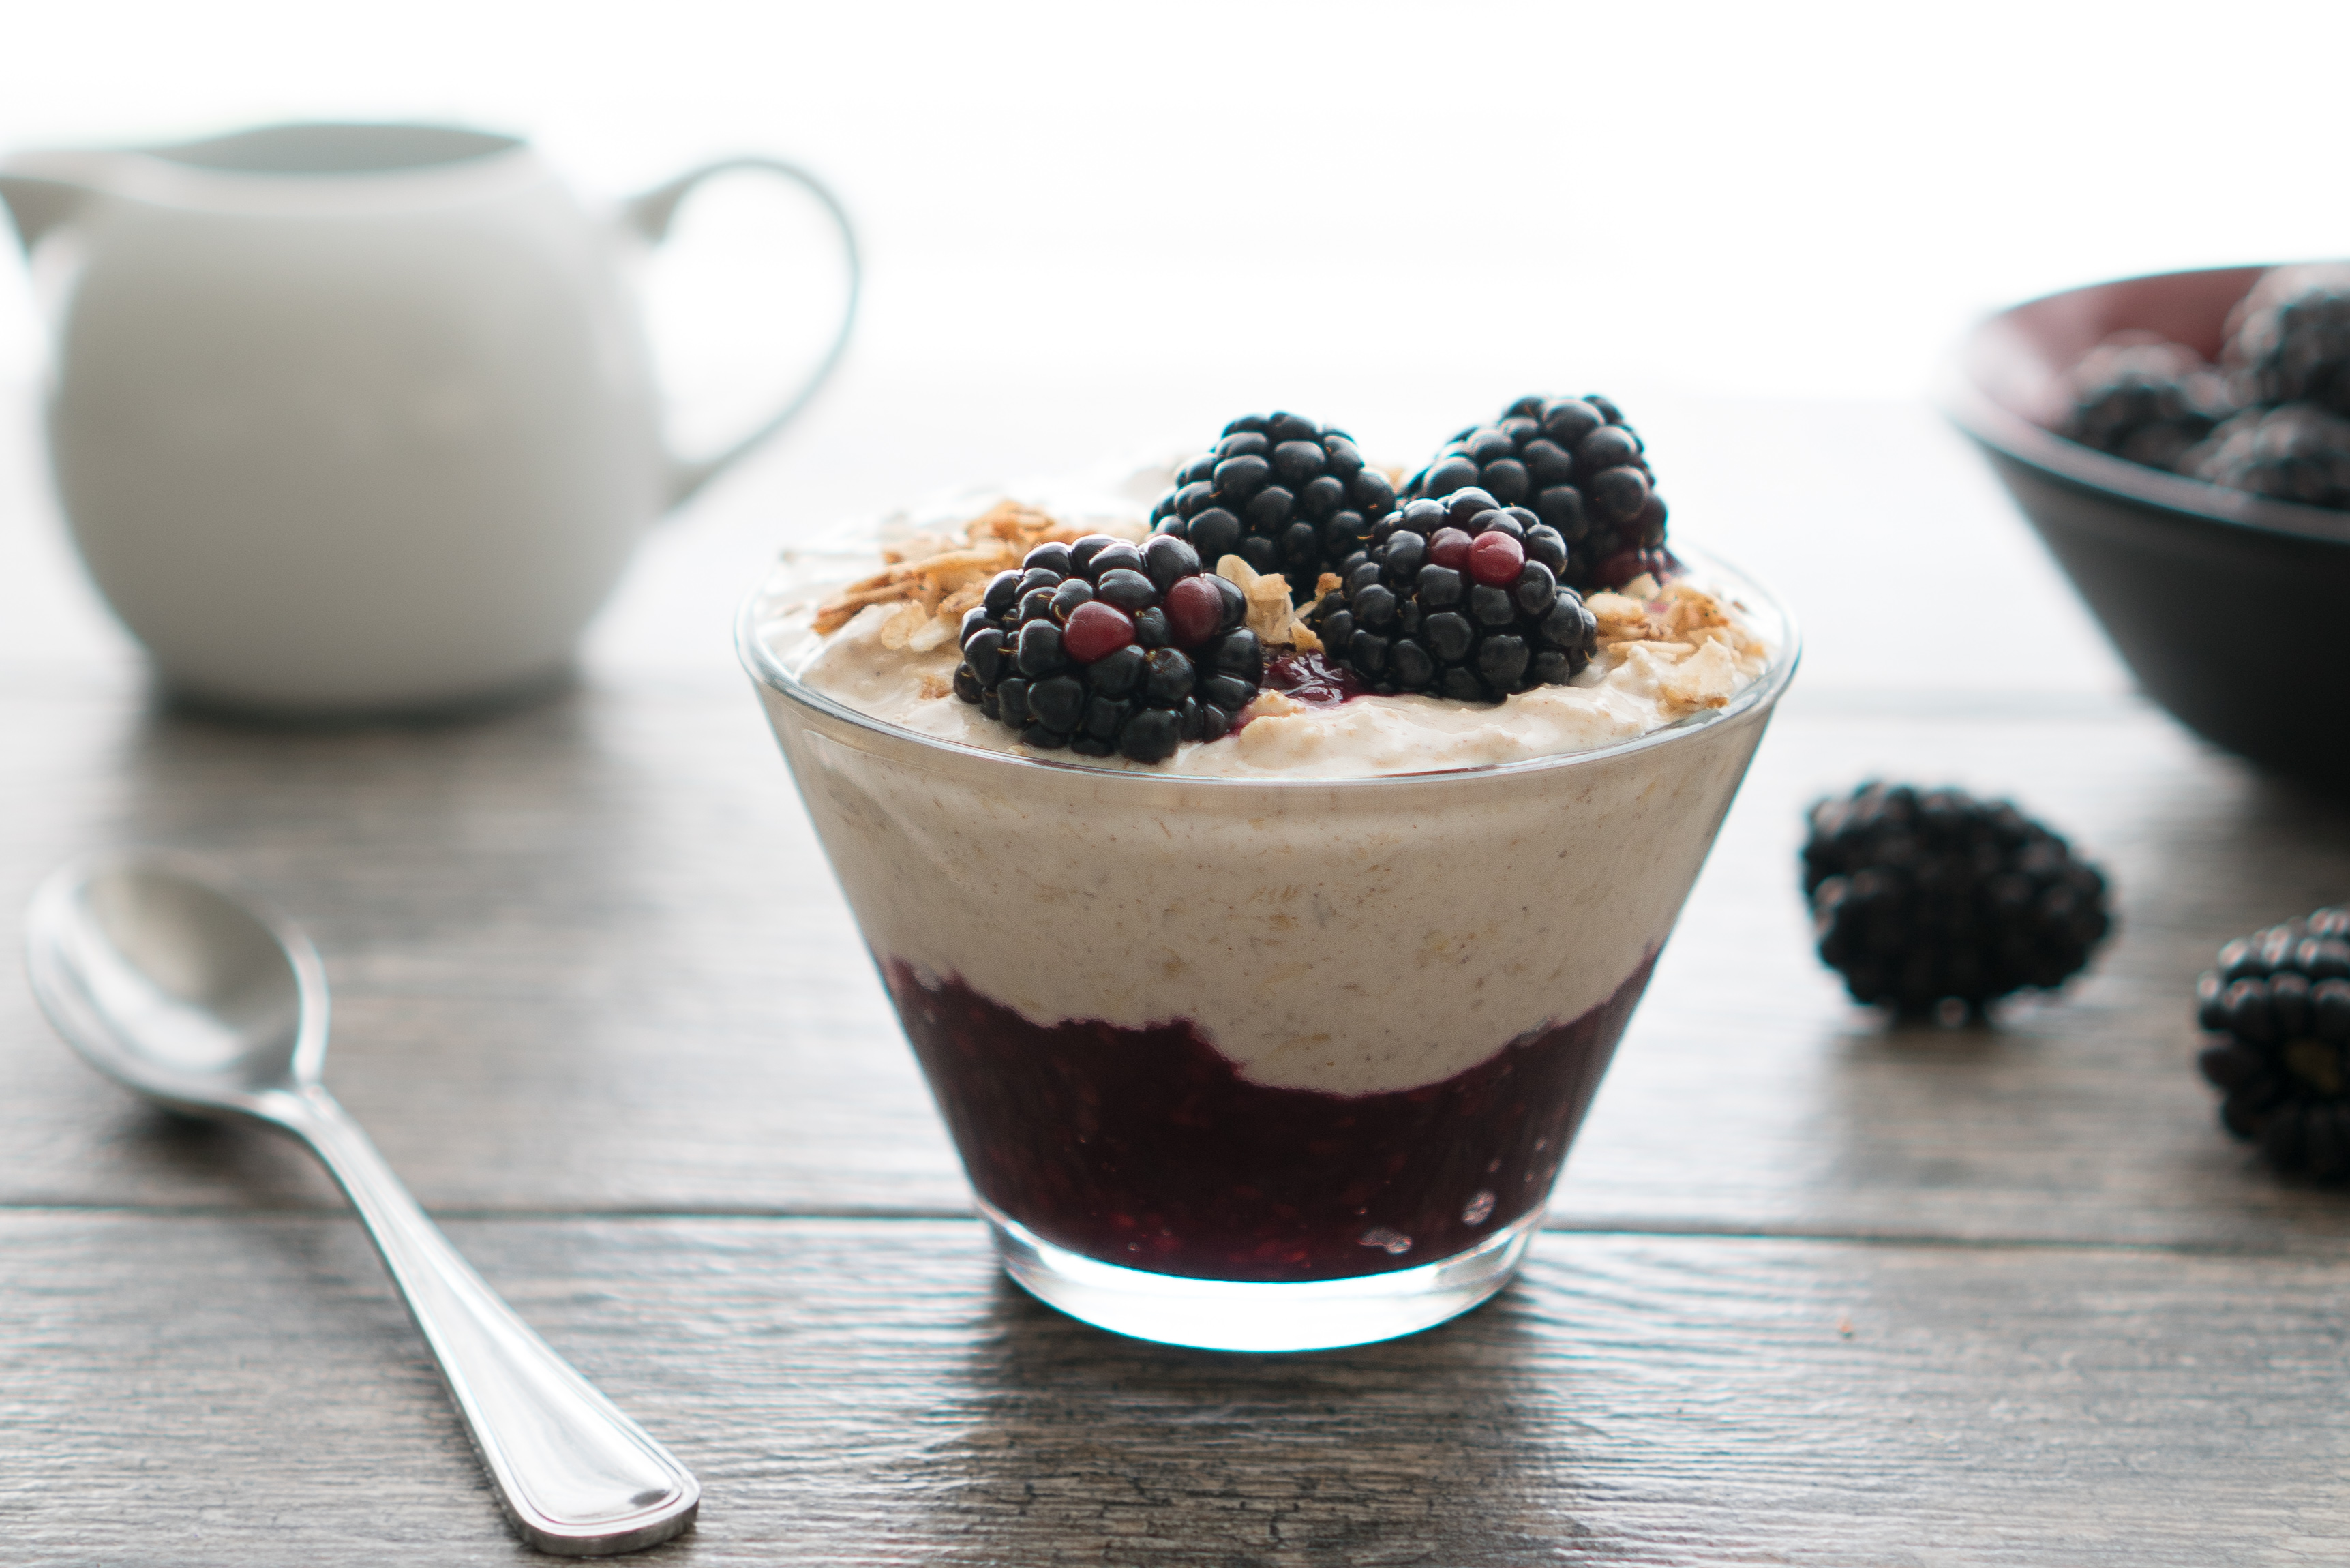 Blackberry Pie Overnight Oats – Easy make-ahead breakfast or sweet preworkout snack! This recipe for Blackberry Pie Overnight Oats is high-protein & gluten-free. With creamy Greek yogurt, almond milk, cinnamon, vanilla, maple syrup, & homemade blackberry jam.♥ | freeyourfork.com